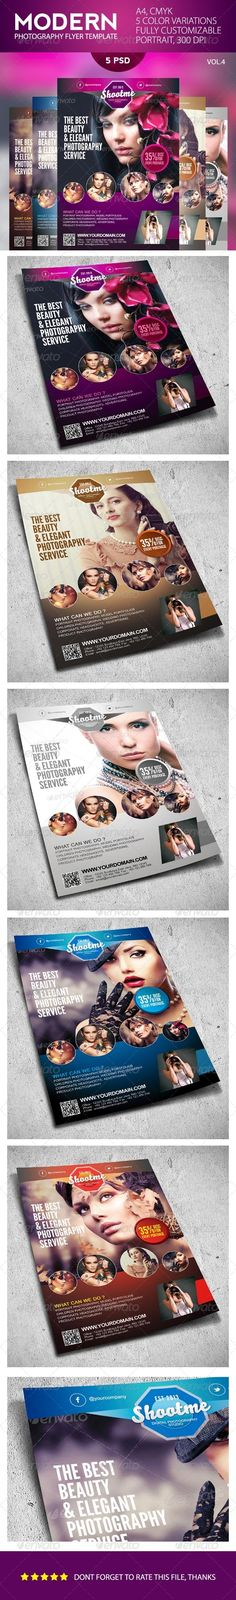 Buy Modern Photography Flyer Template by januar on GraphicRiver. Modern Photography Flyer Template An elegant, professional, simple and ultra-clean layout for your Flyer. Photography Flyer, Photography Logo Design, Modern Photography, Fashion Photography, Free Flyer Templates, Print Templates, Urban Ideas, Simple Portrait, Corporate Flyer